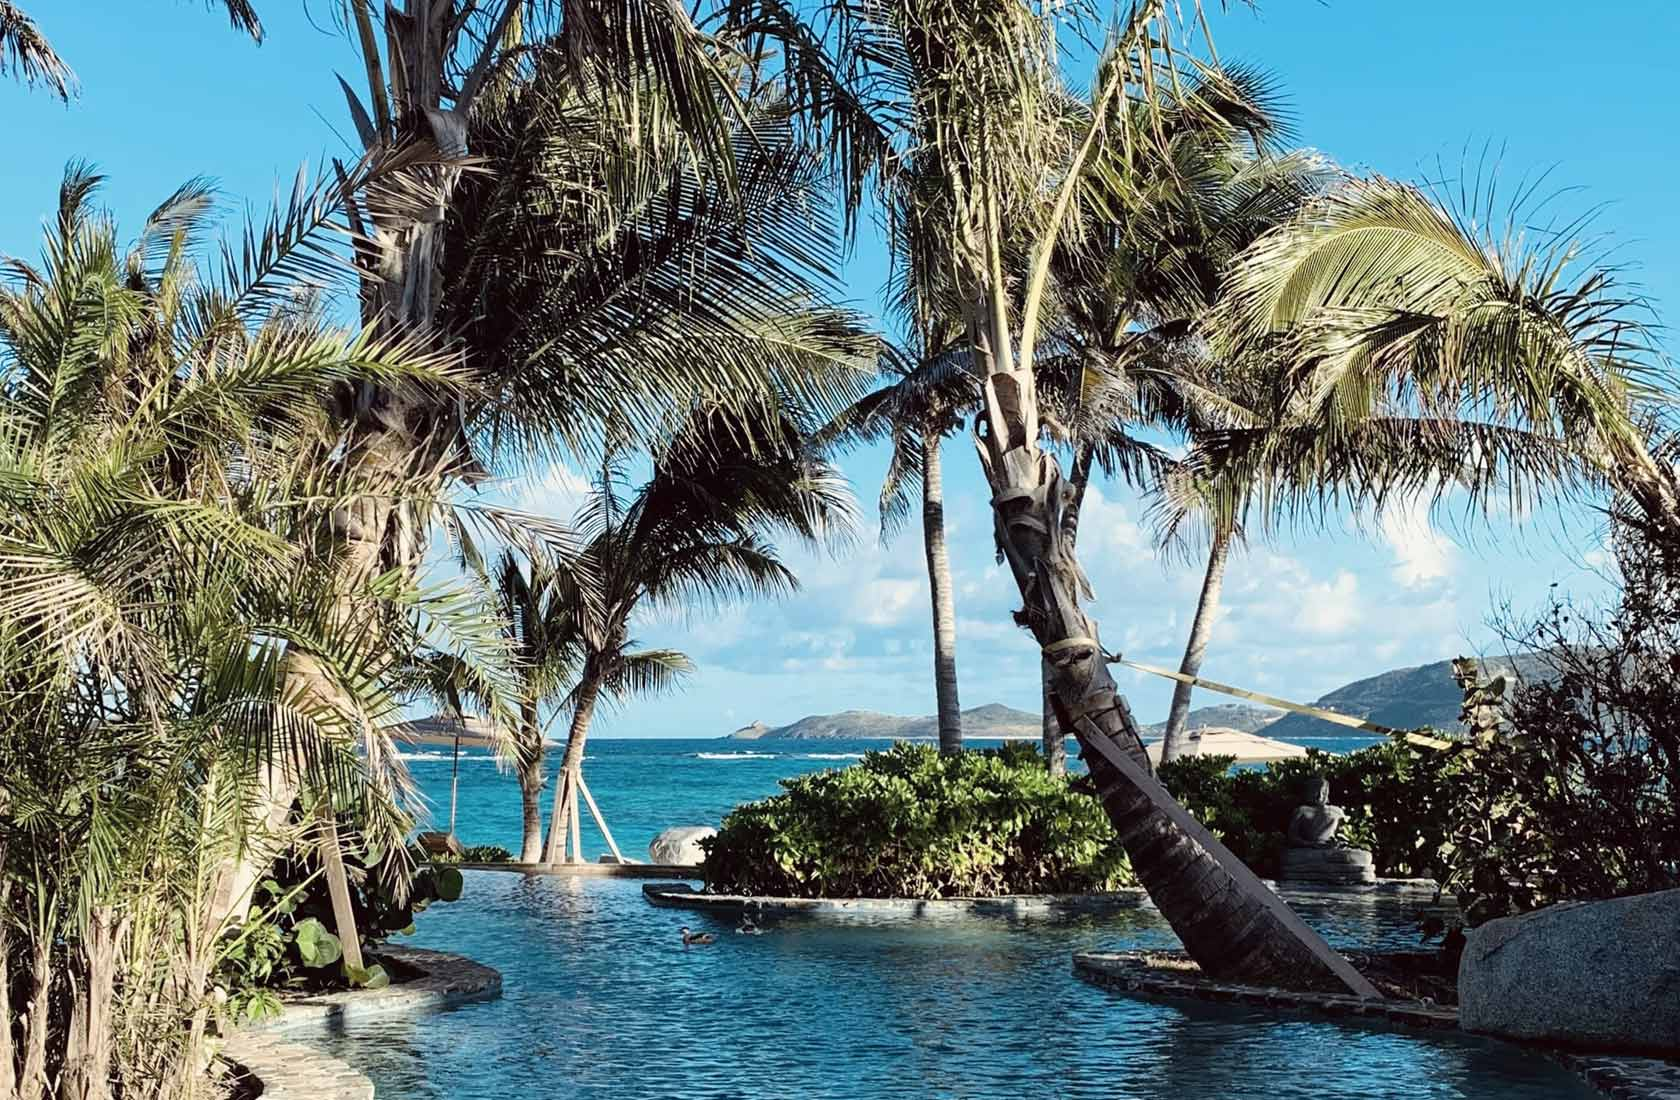 tax havens: safeguarding wealth or facilitating financial crime?